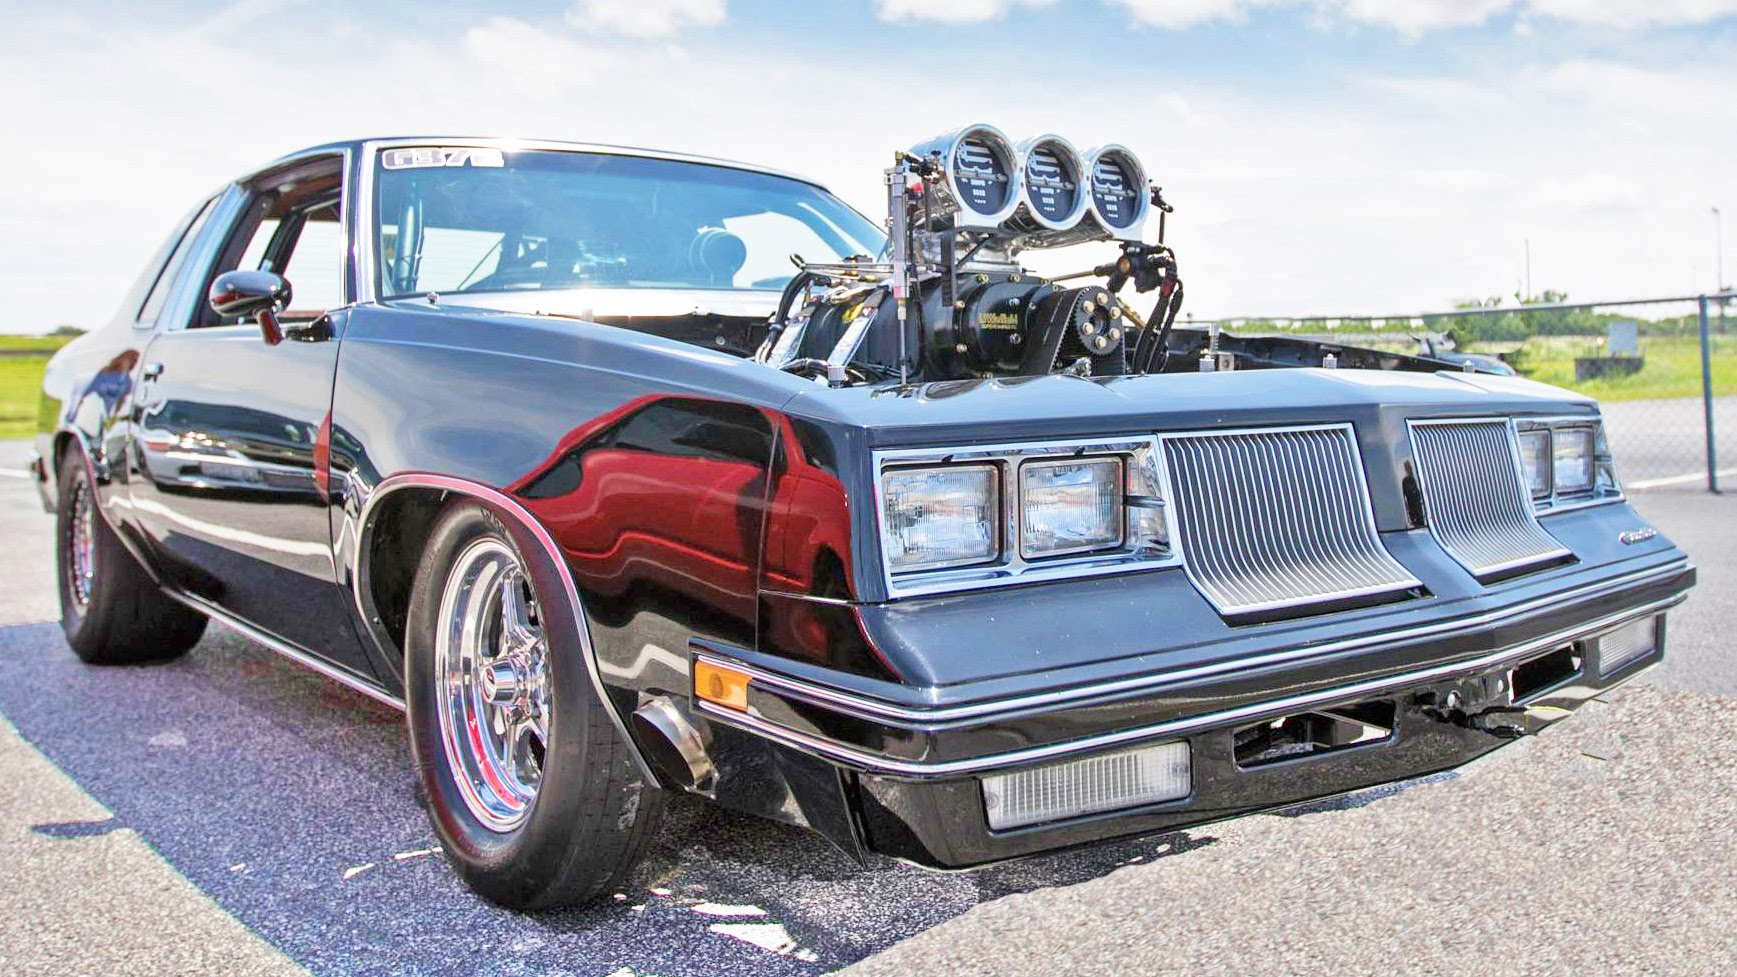 Nasty 1650HP Blown Cutlass